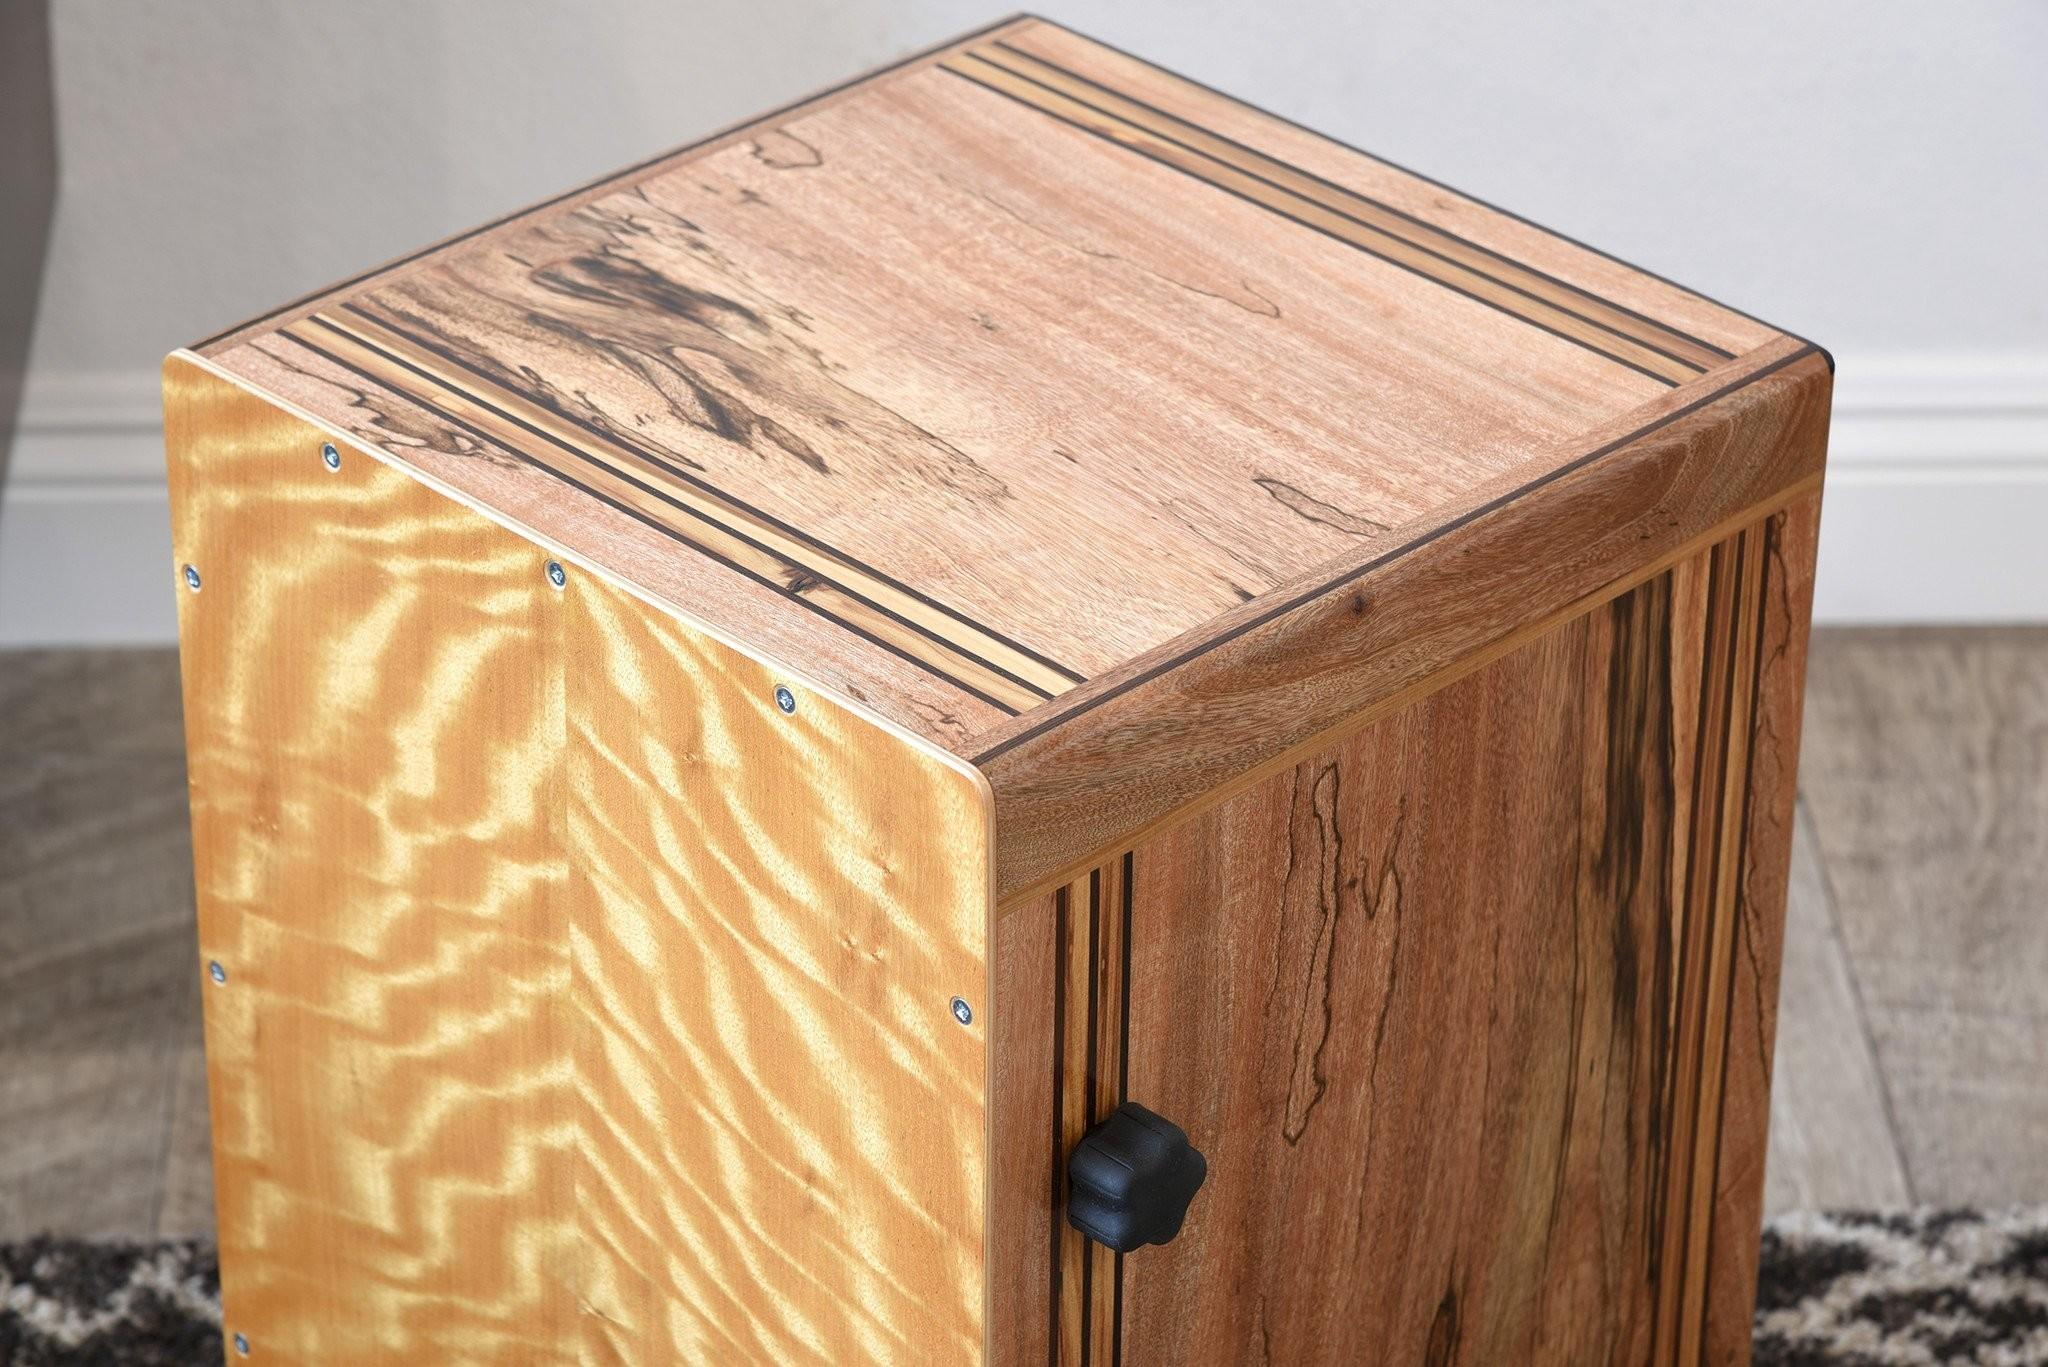 Reclaimed Wood Cajon Drum Handmade Woodwaves